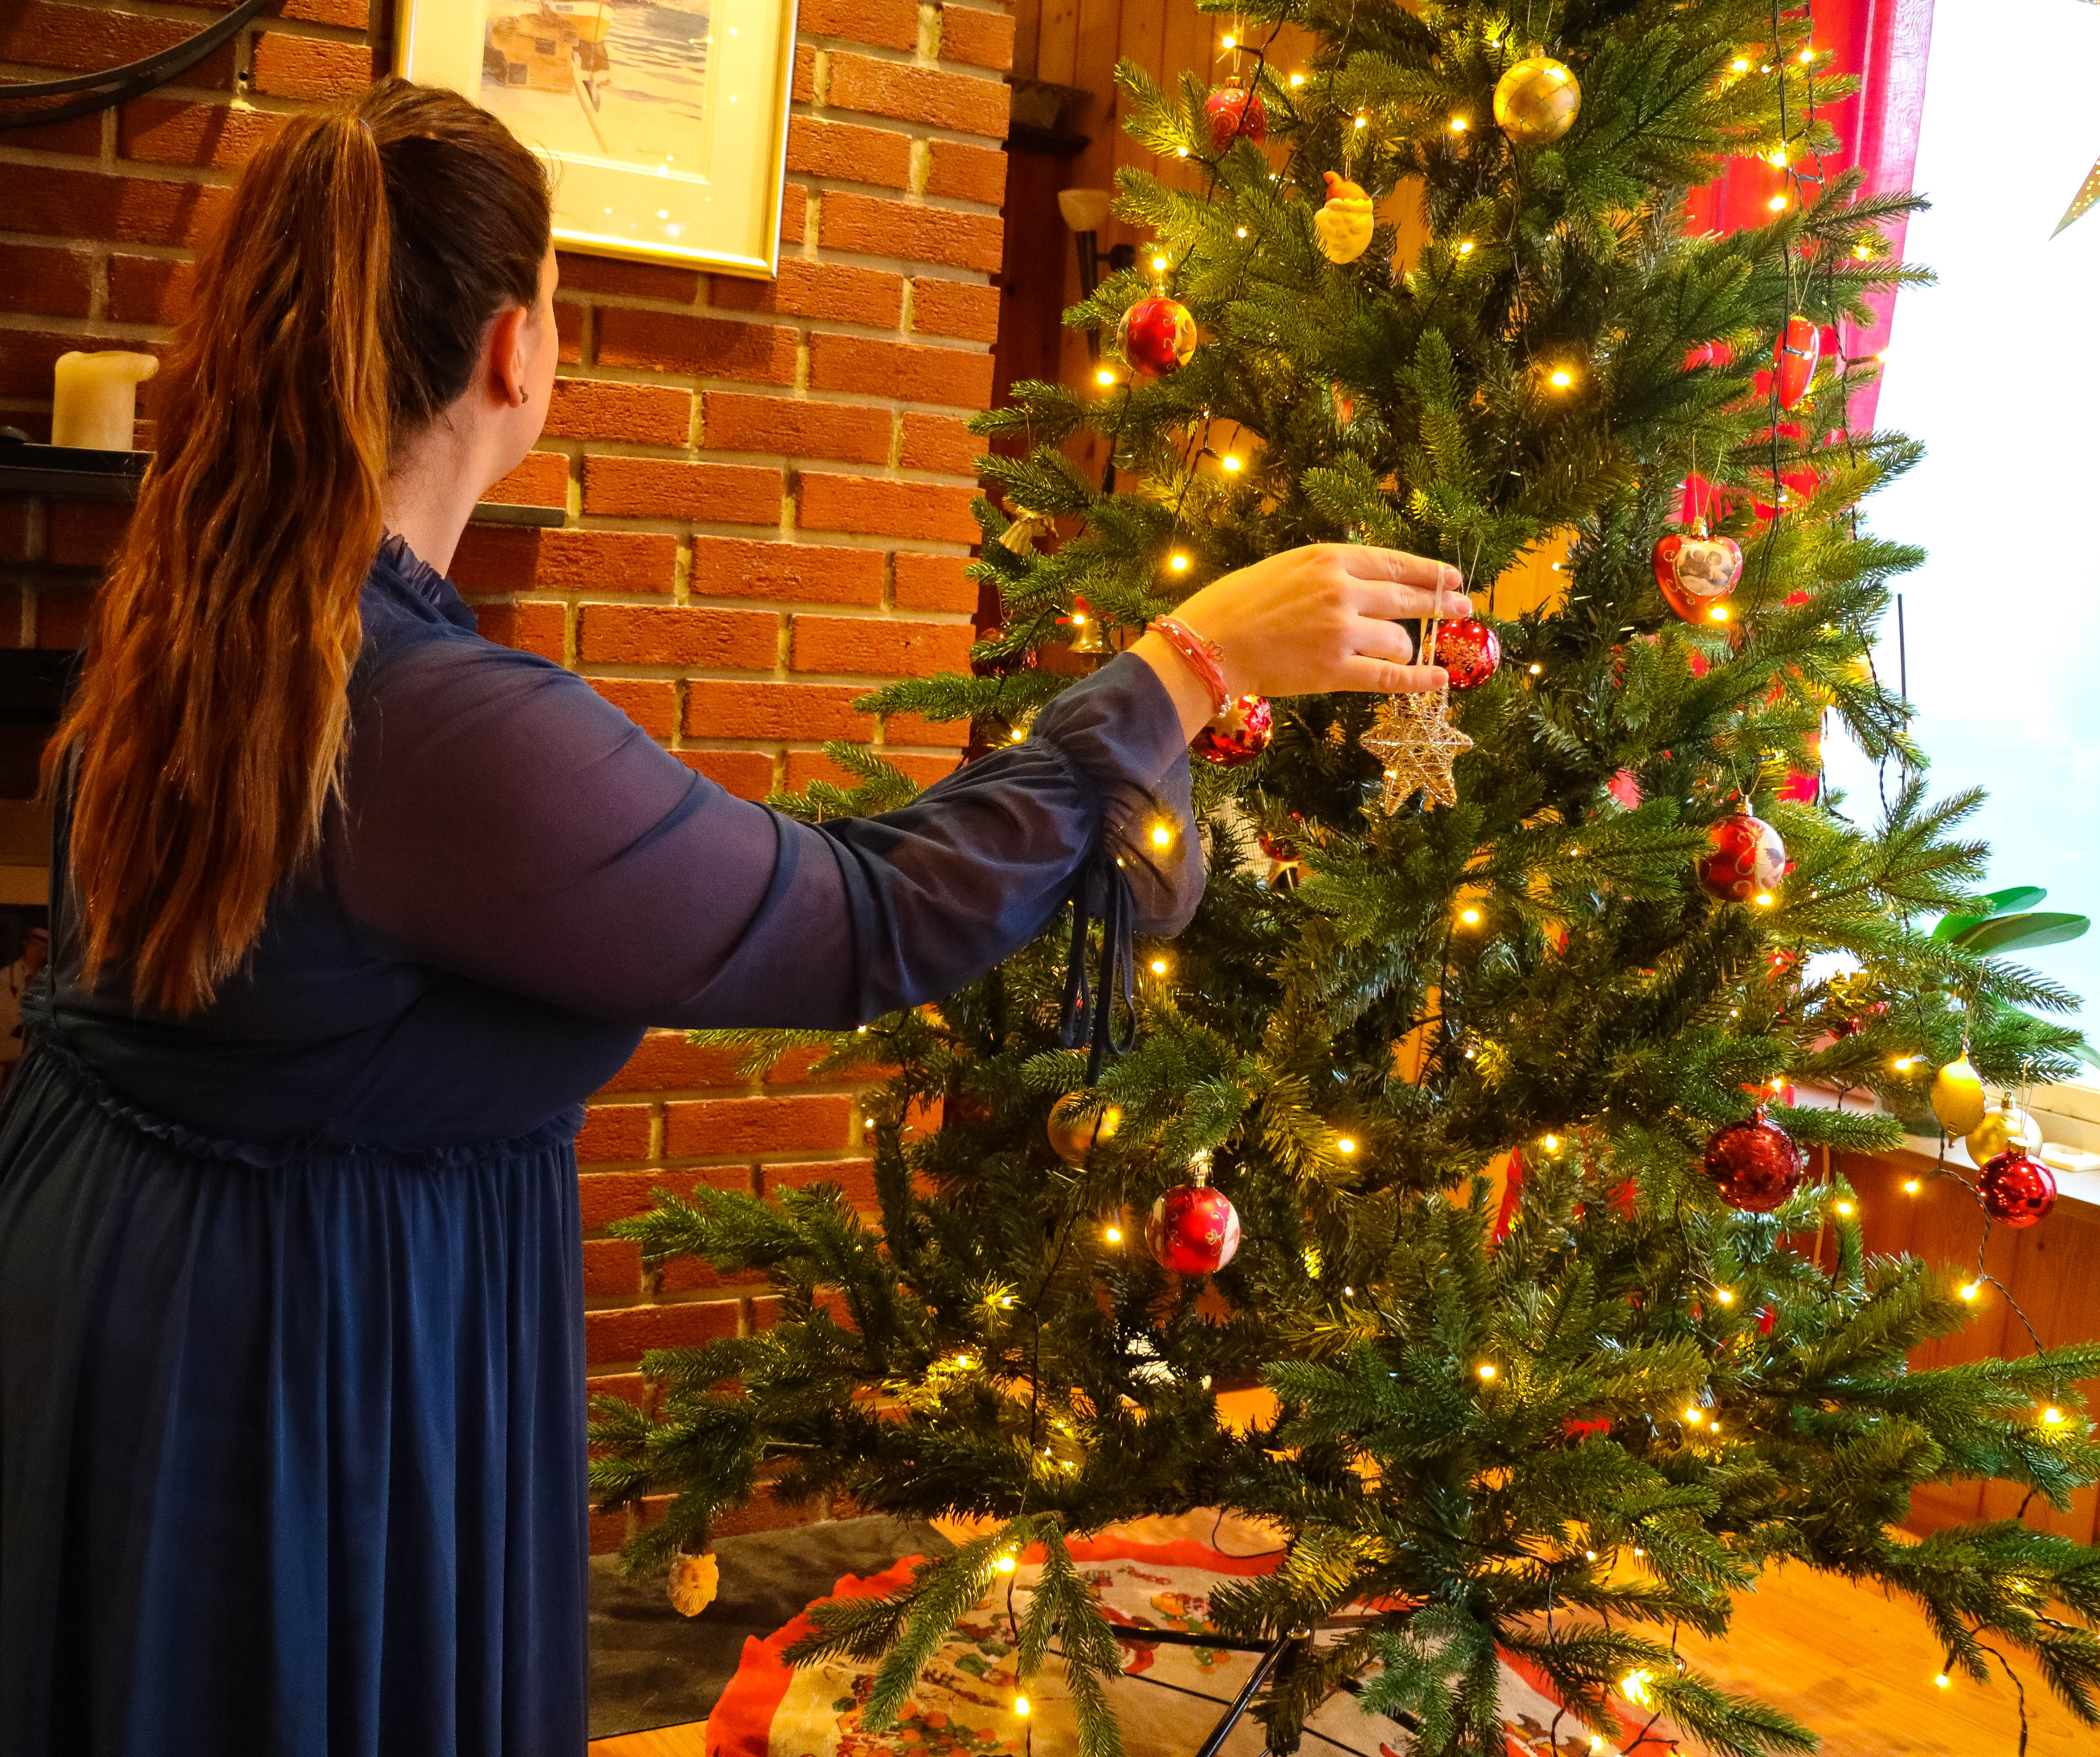 Norwegian christmas traditions include decorating the tree, as in most countries.